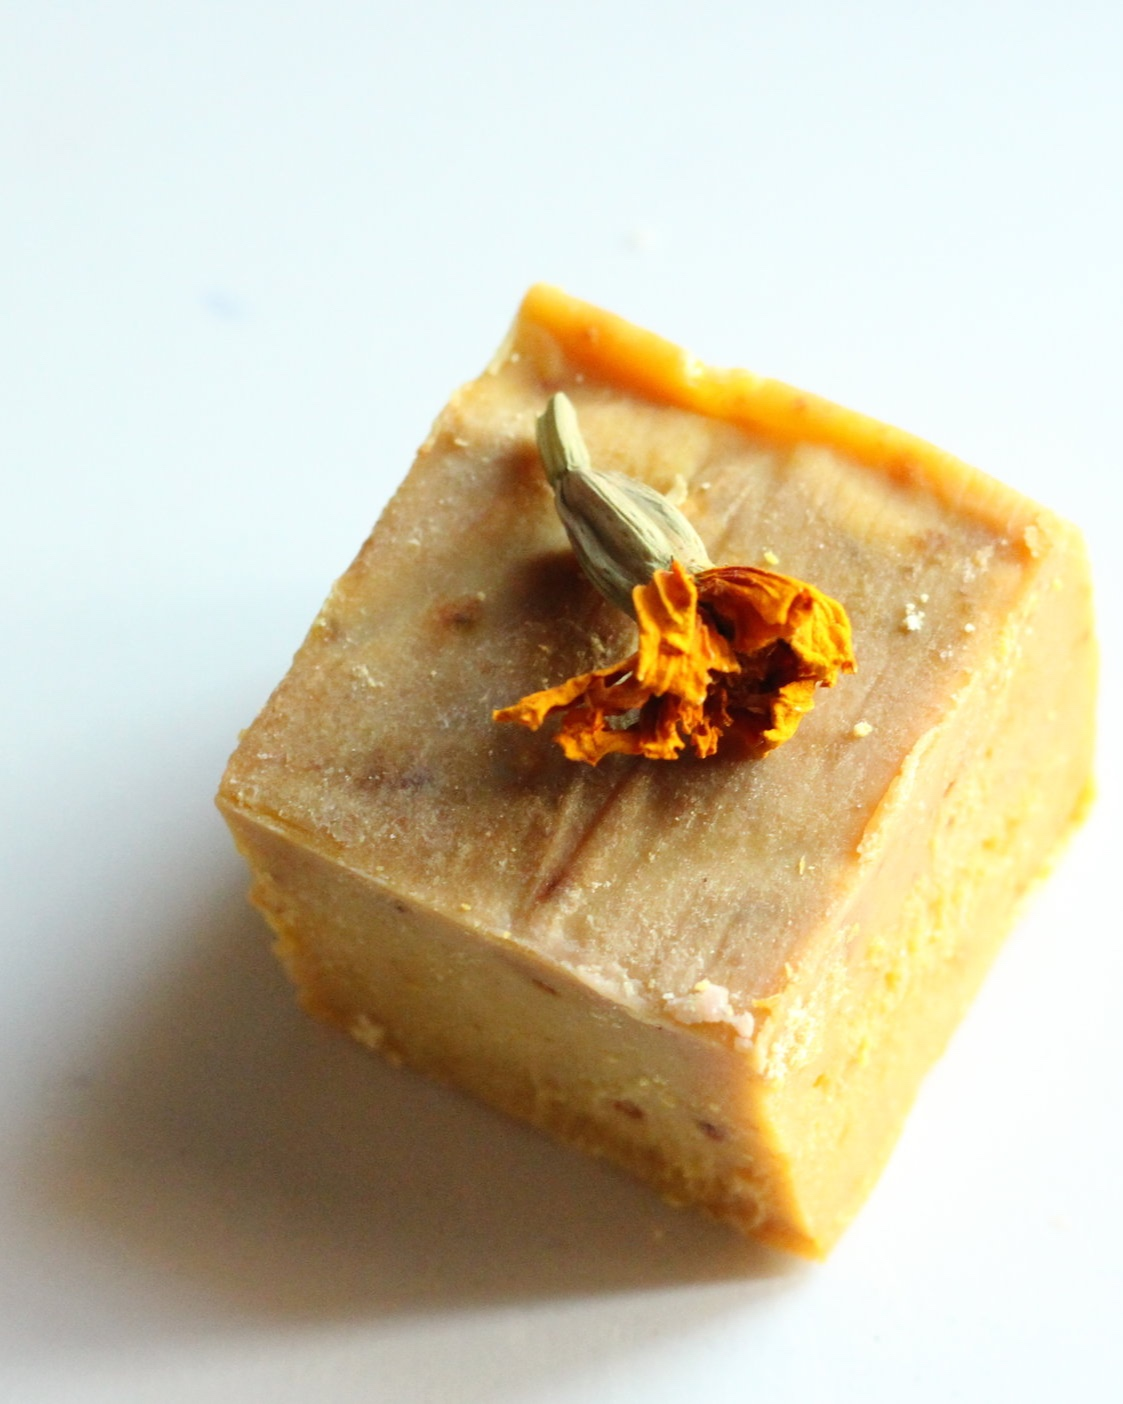 MARIGOLD GLOW - Dried calendula petals, orange essential oil, sea-buckthorn oil soap, with shea butter and almond oil